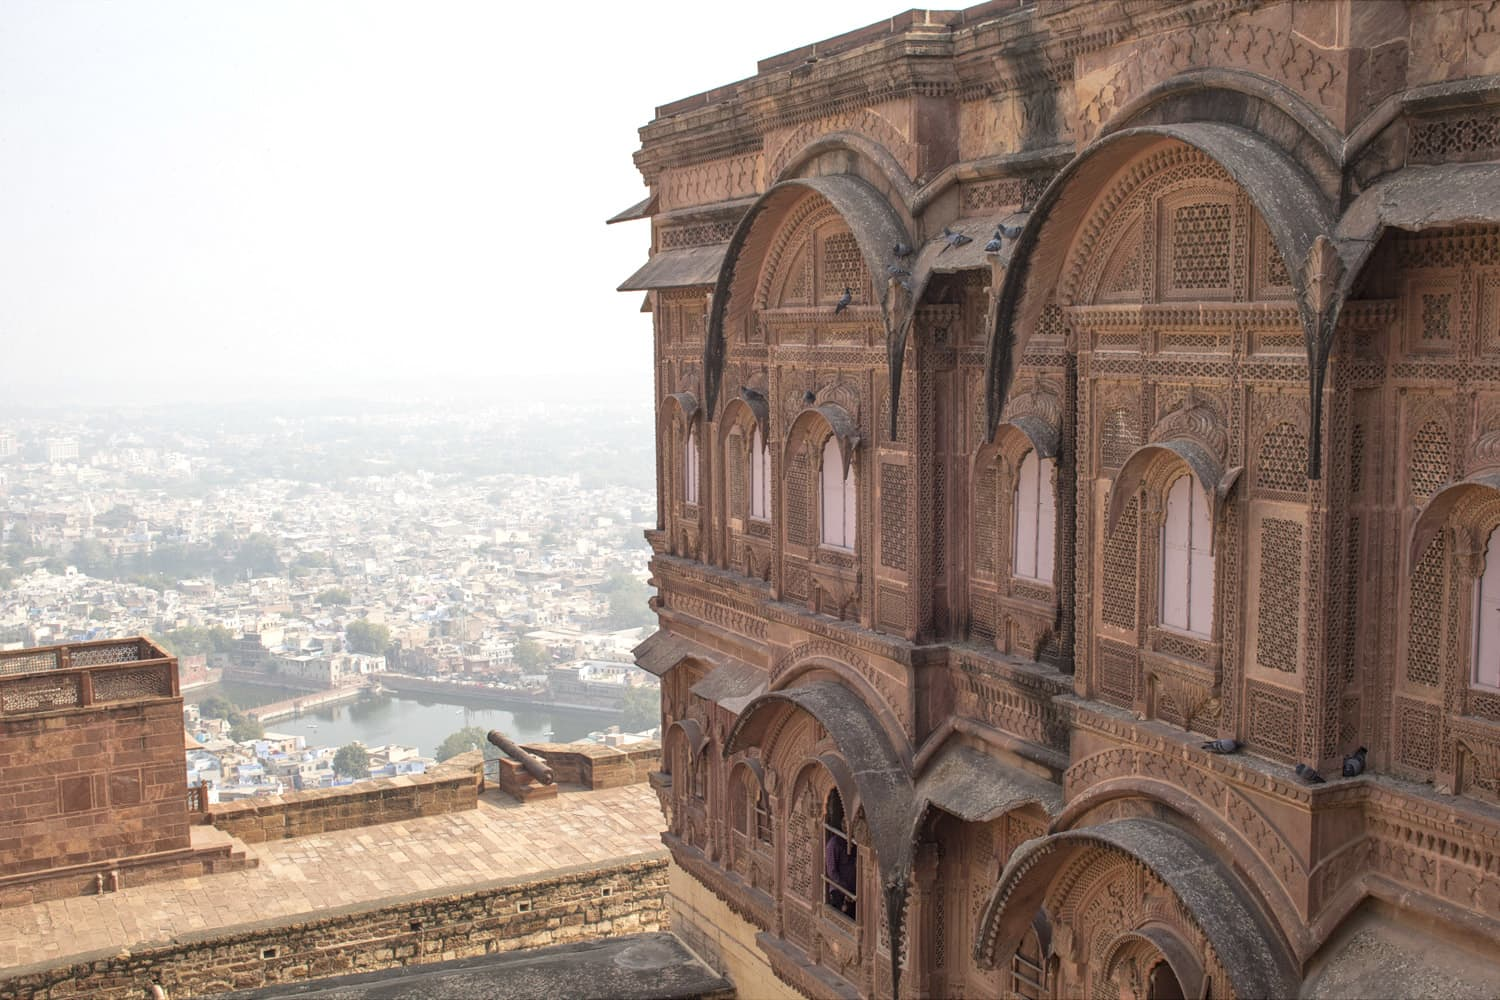 Mehrangarh Fort and Palace Museum